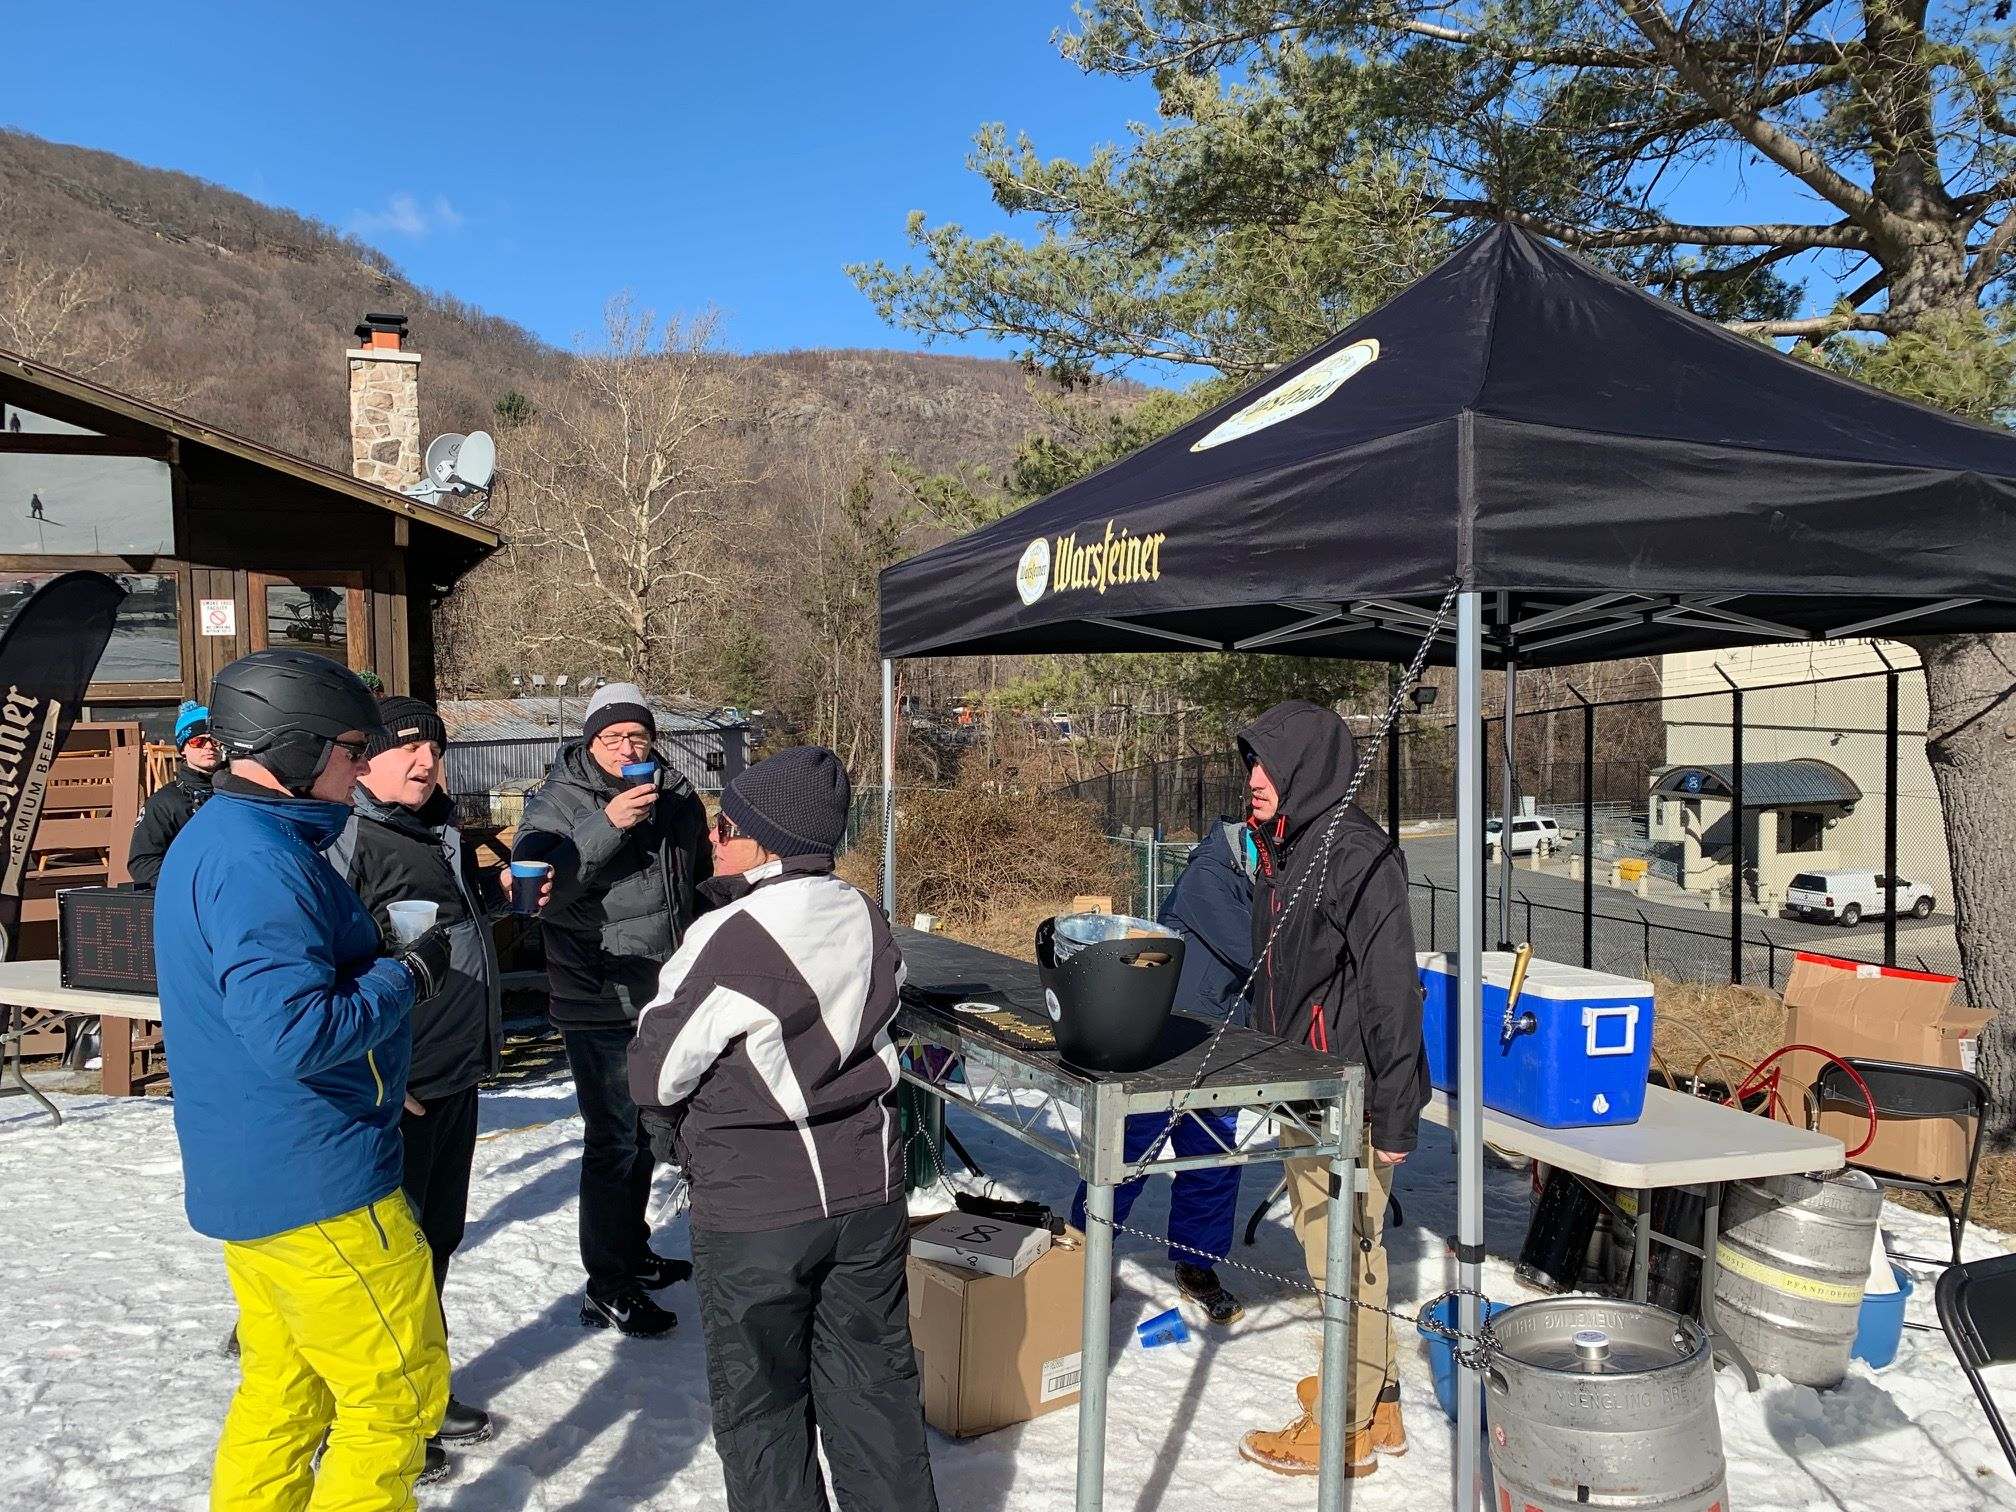 Polar Fest - Sponsor Interaction - Beer Tent